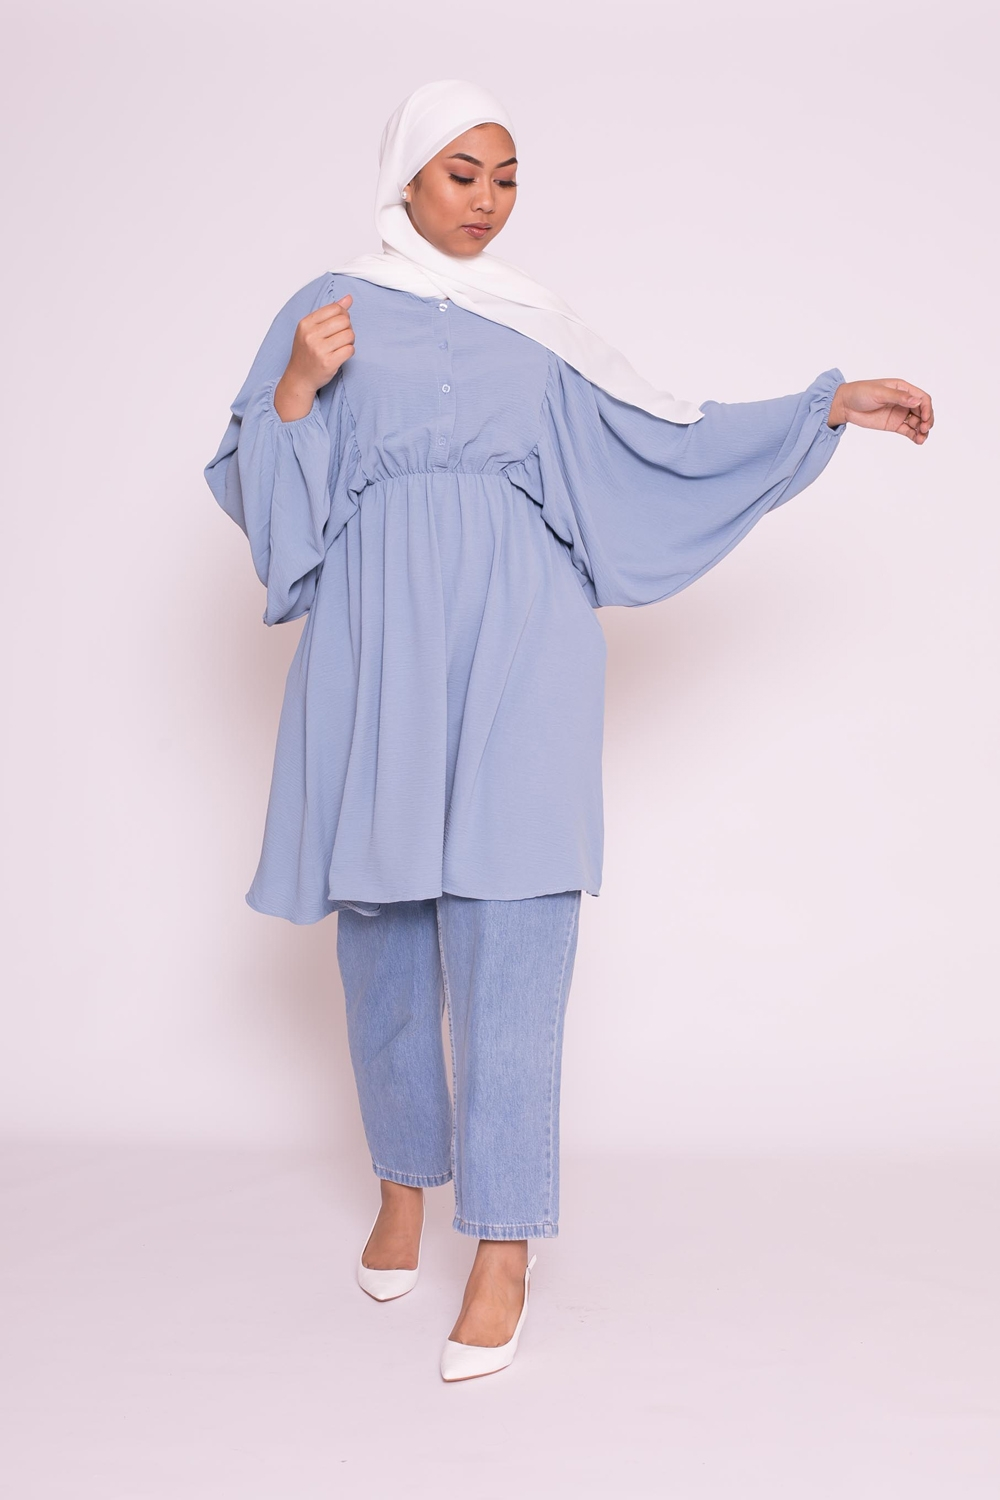 Tunique coupe papillon bleu denim femme musulmane